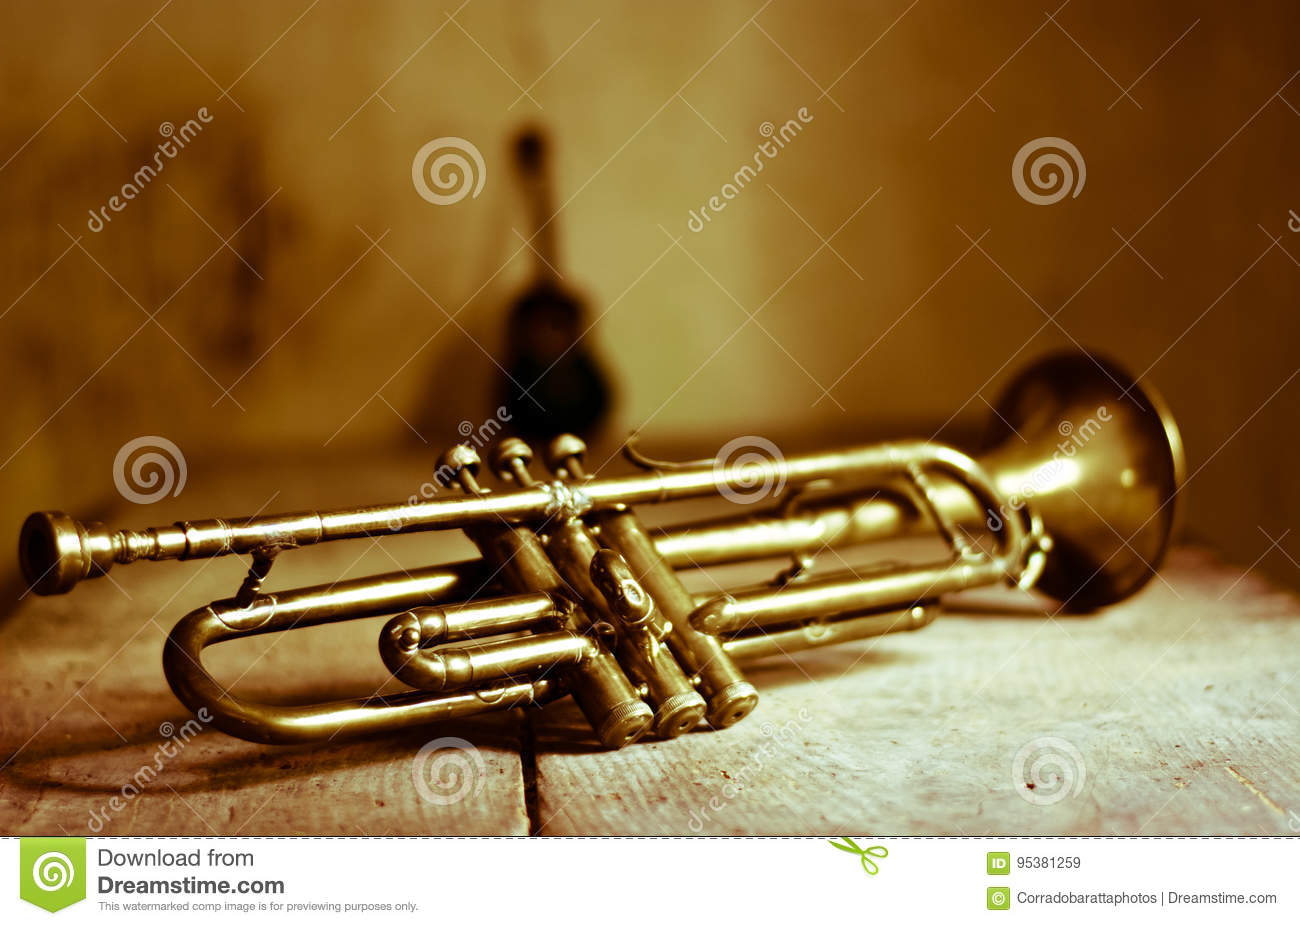 An Ancient Trumpet Of The 1920s Stock Image - Image of guitar ...